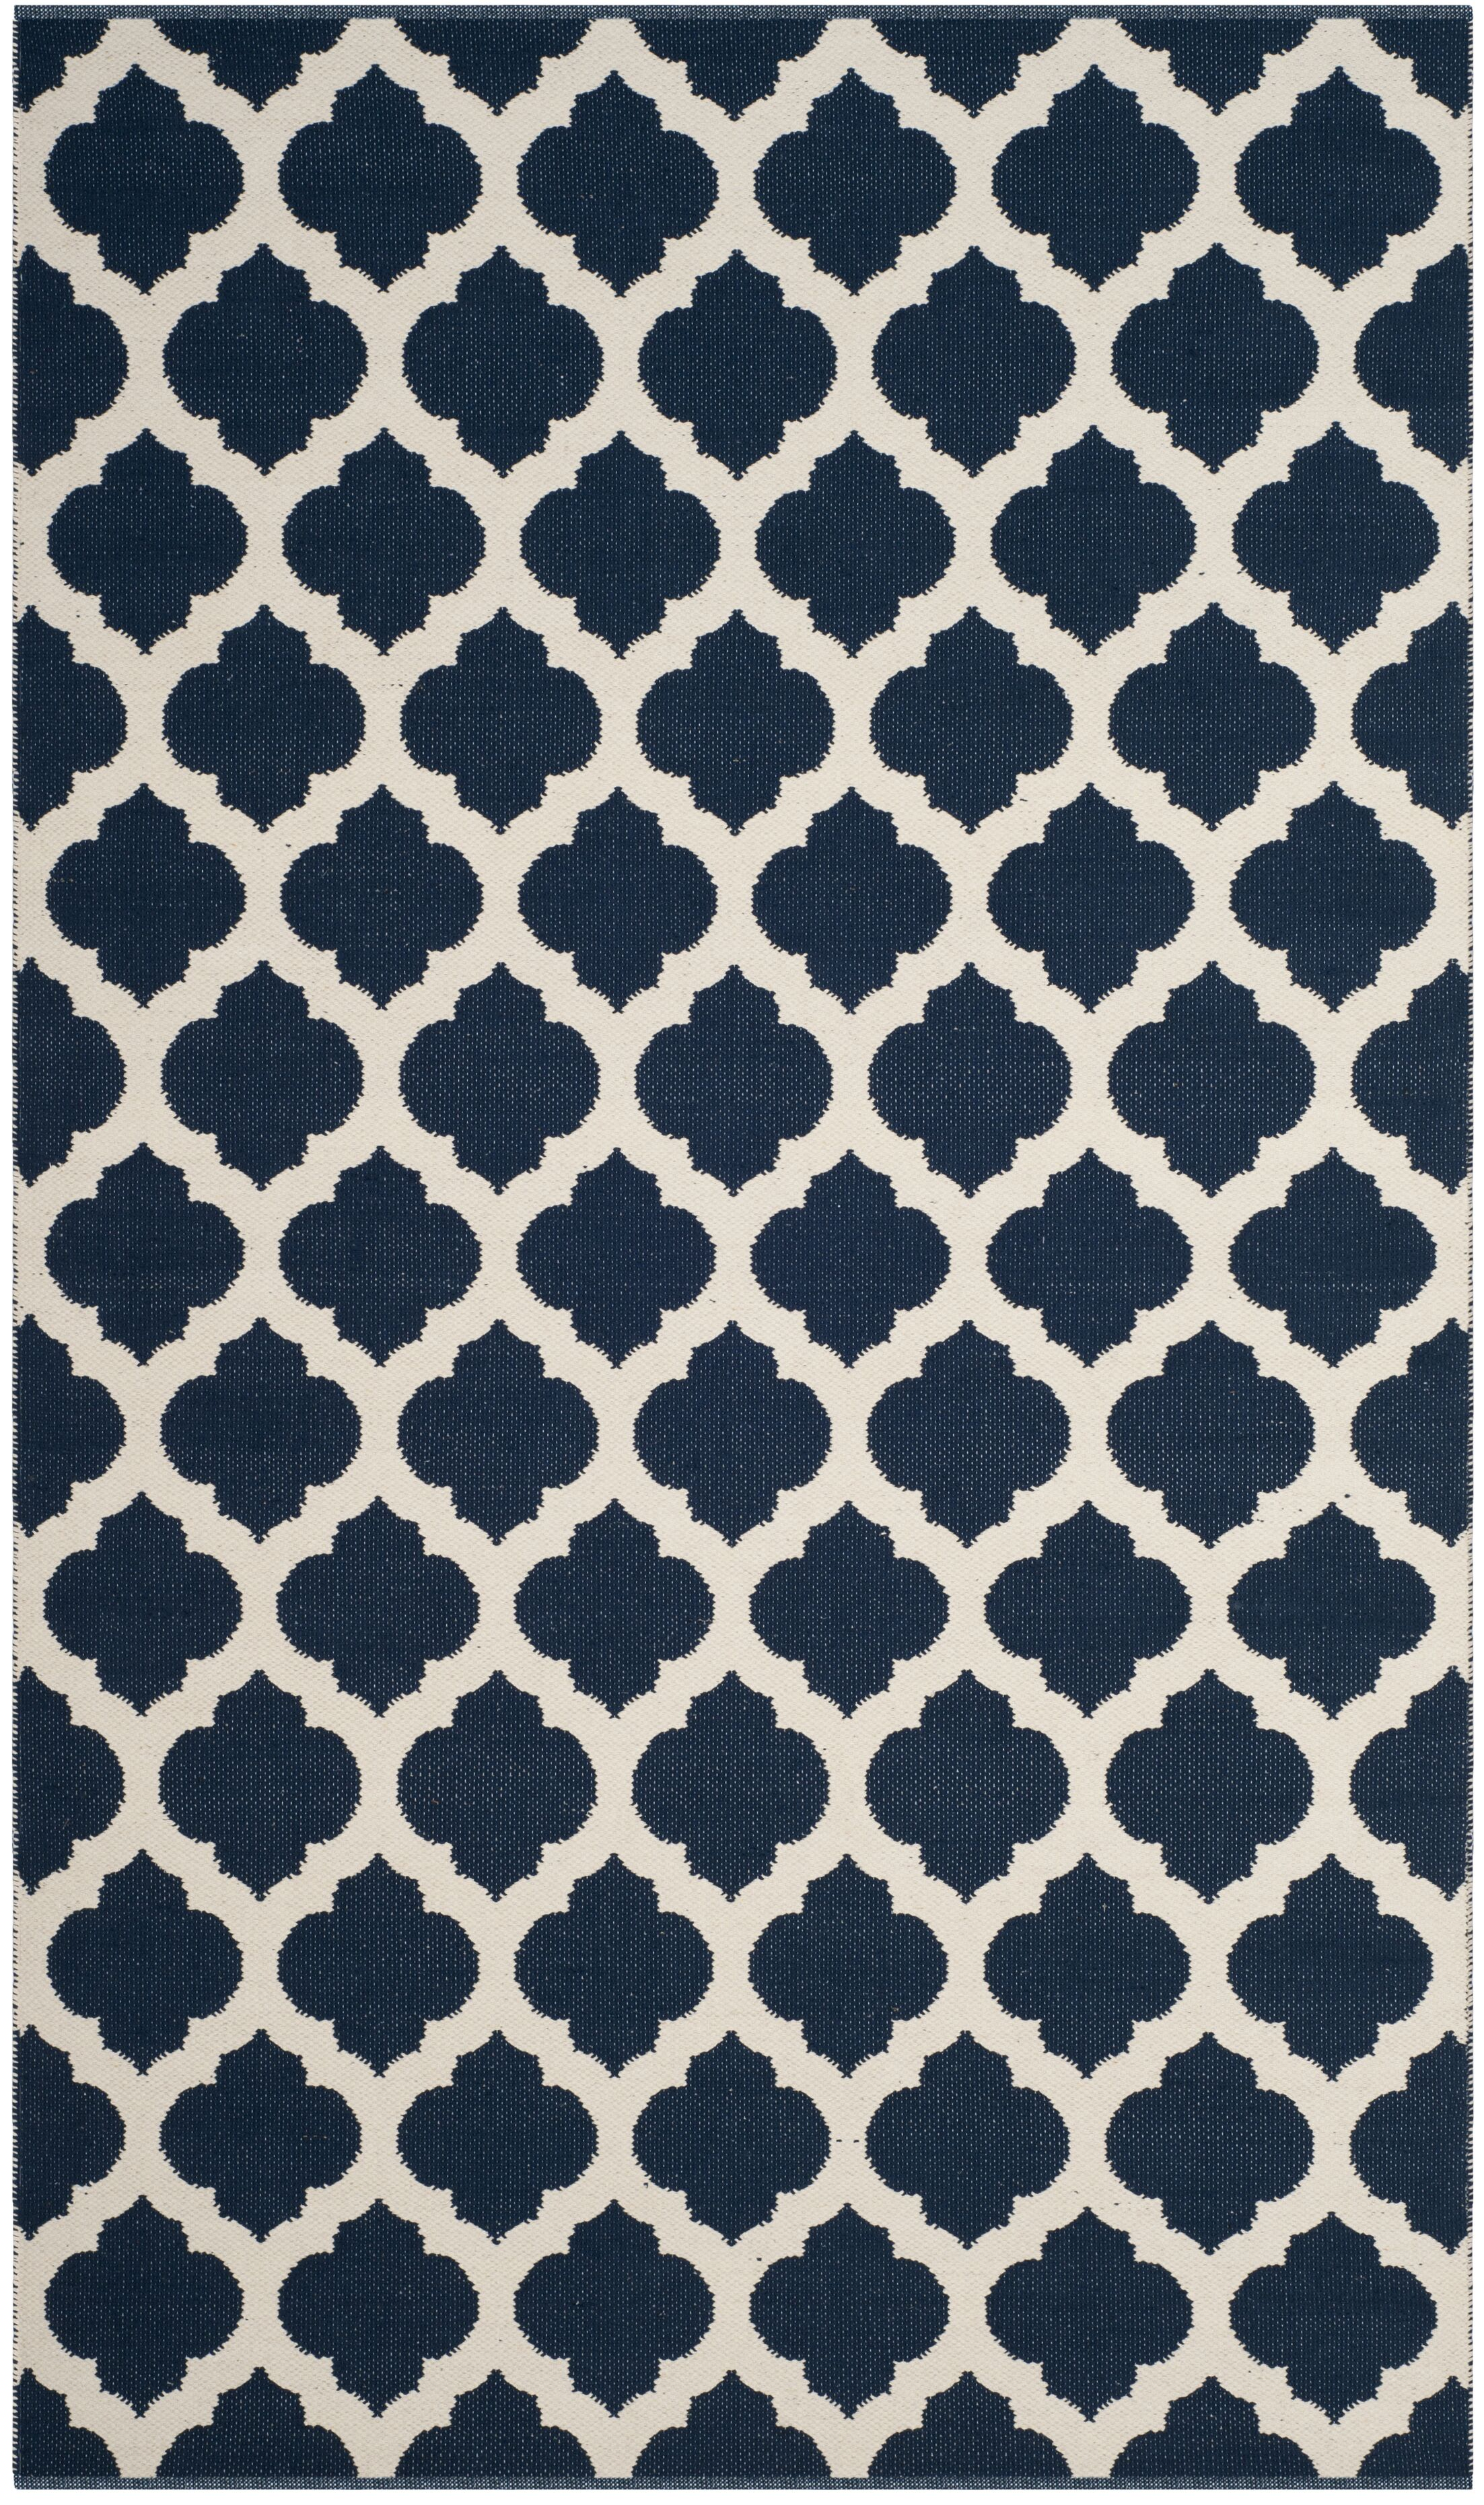 Willow Hand-Woven Navy/Ivory Area Rug Rug Size: Rectangle 4' x 6'